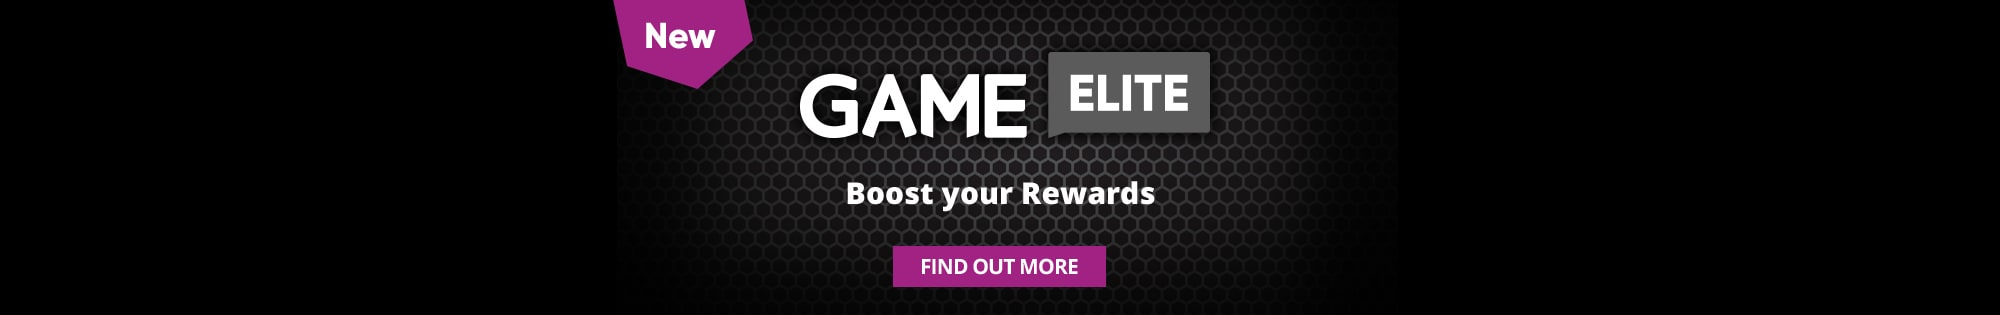 Game Elite - Homepage Banner